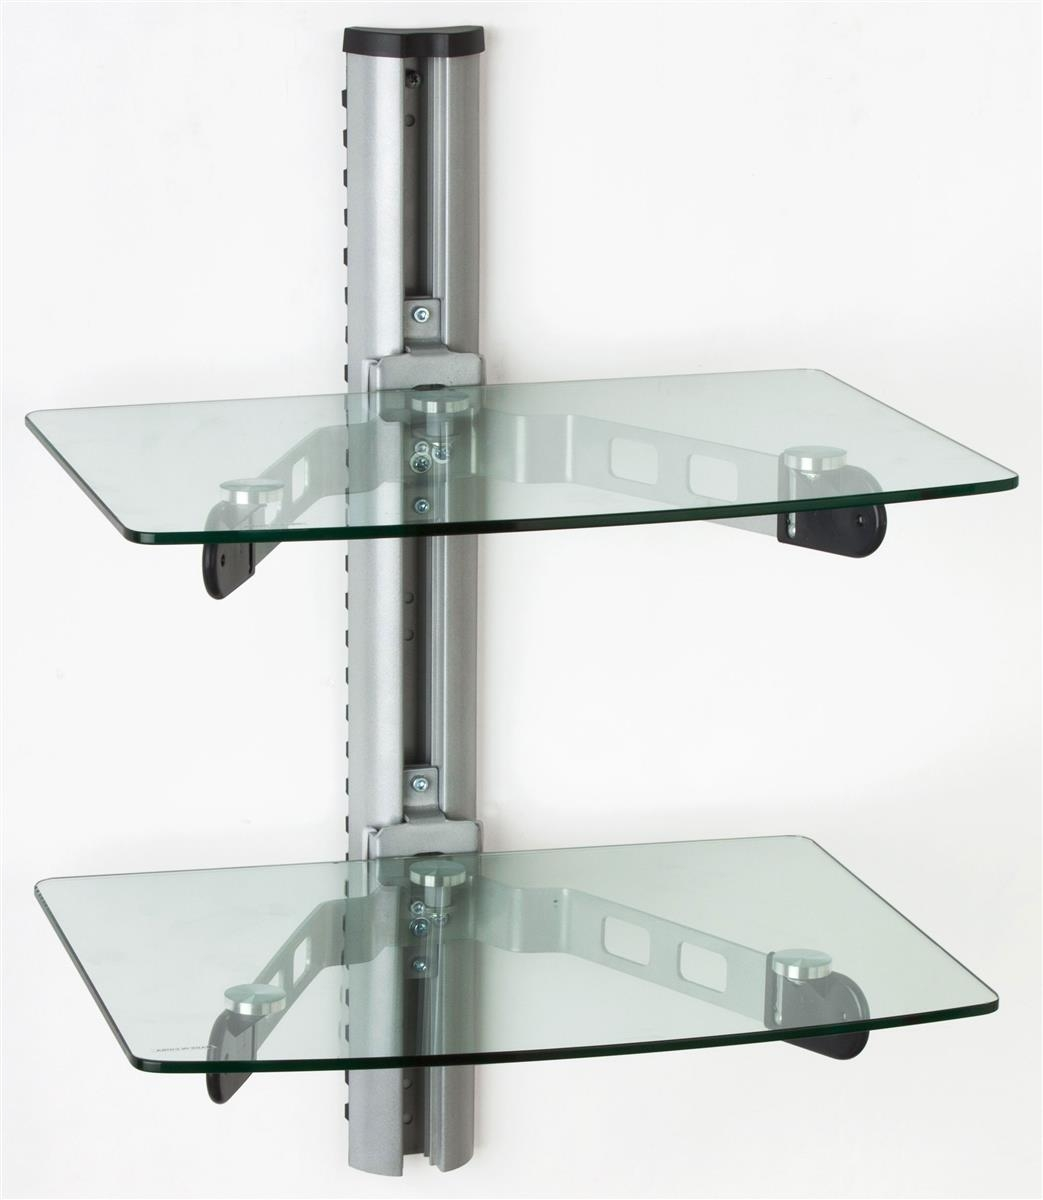 Wall Mounted Glass Shelves Av Component Stand For Wall Mounted Glass Shelves (View 3 of 15)